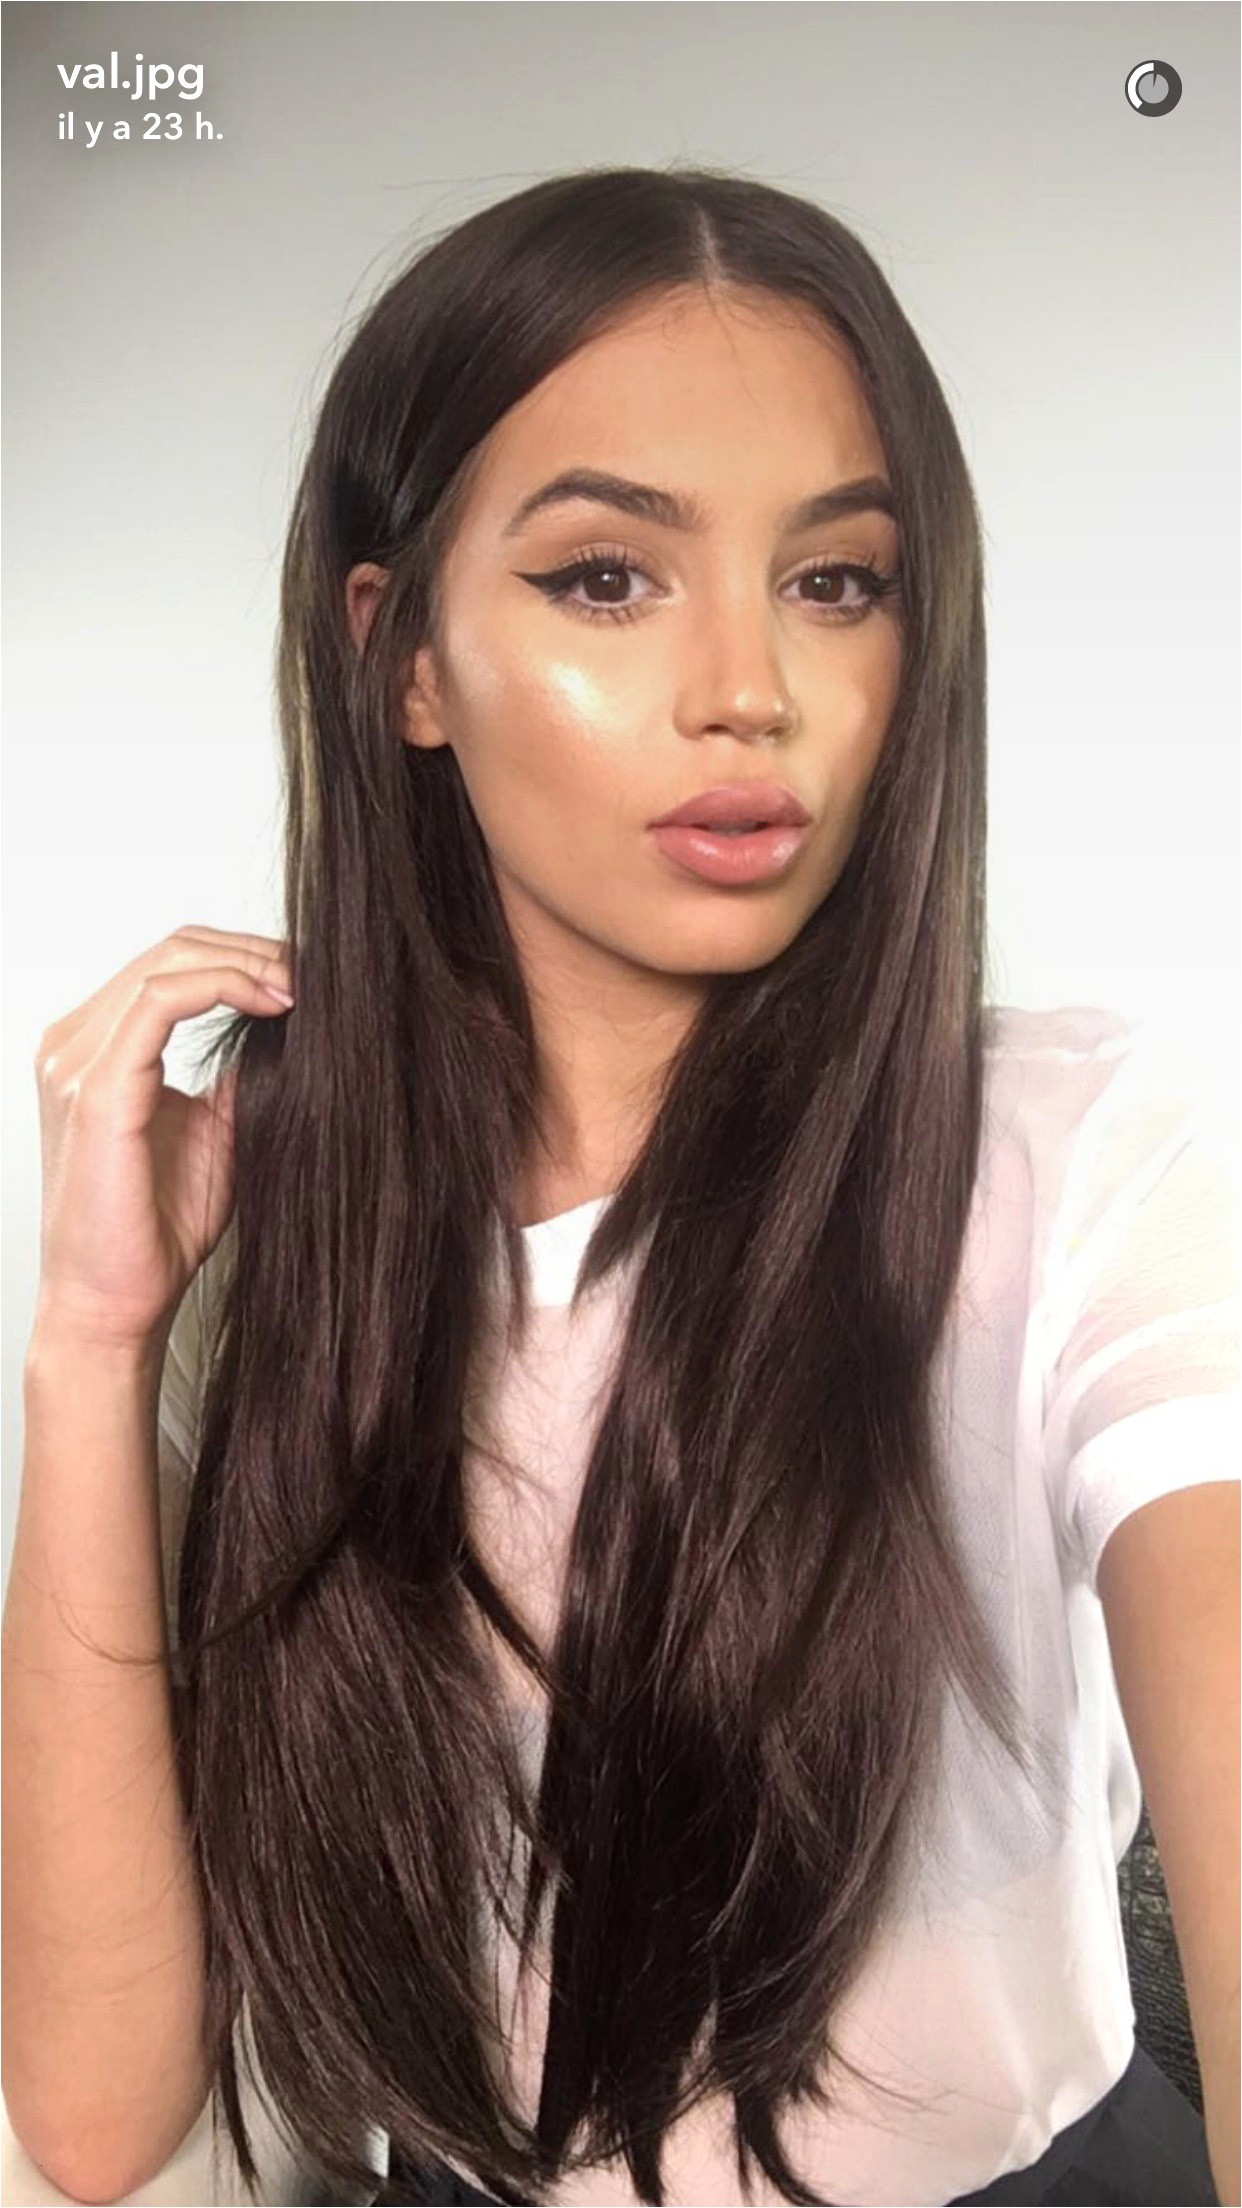 Hair Styling Girl Pics Best Hairstyle for Girls Aetnaspringscellars Hair Styling Girl Stock Hairstyle In